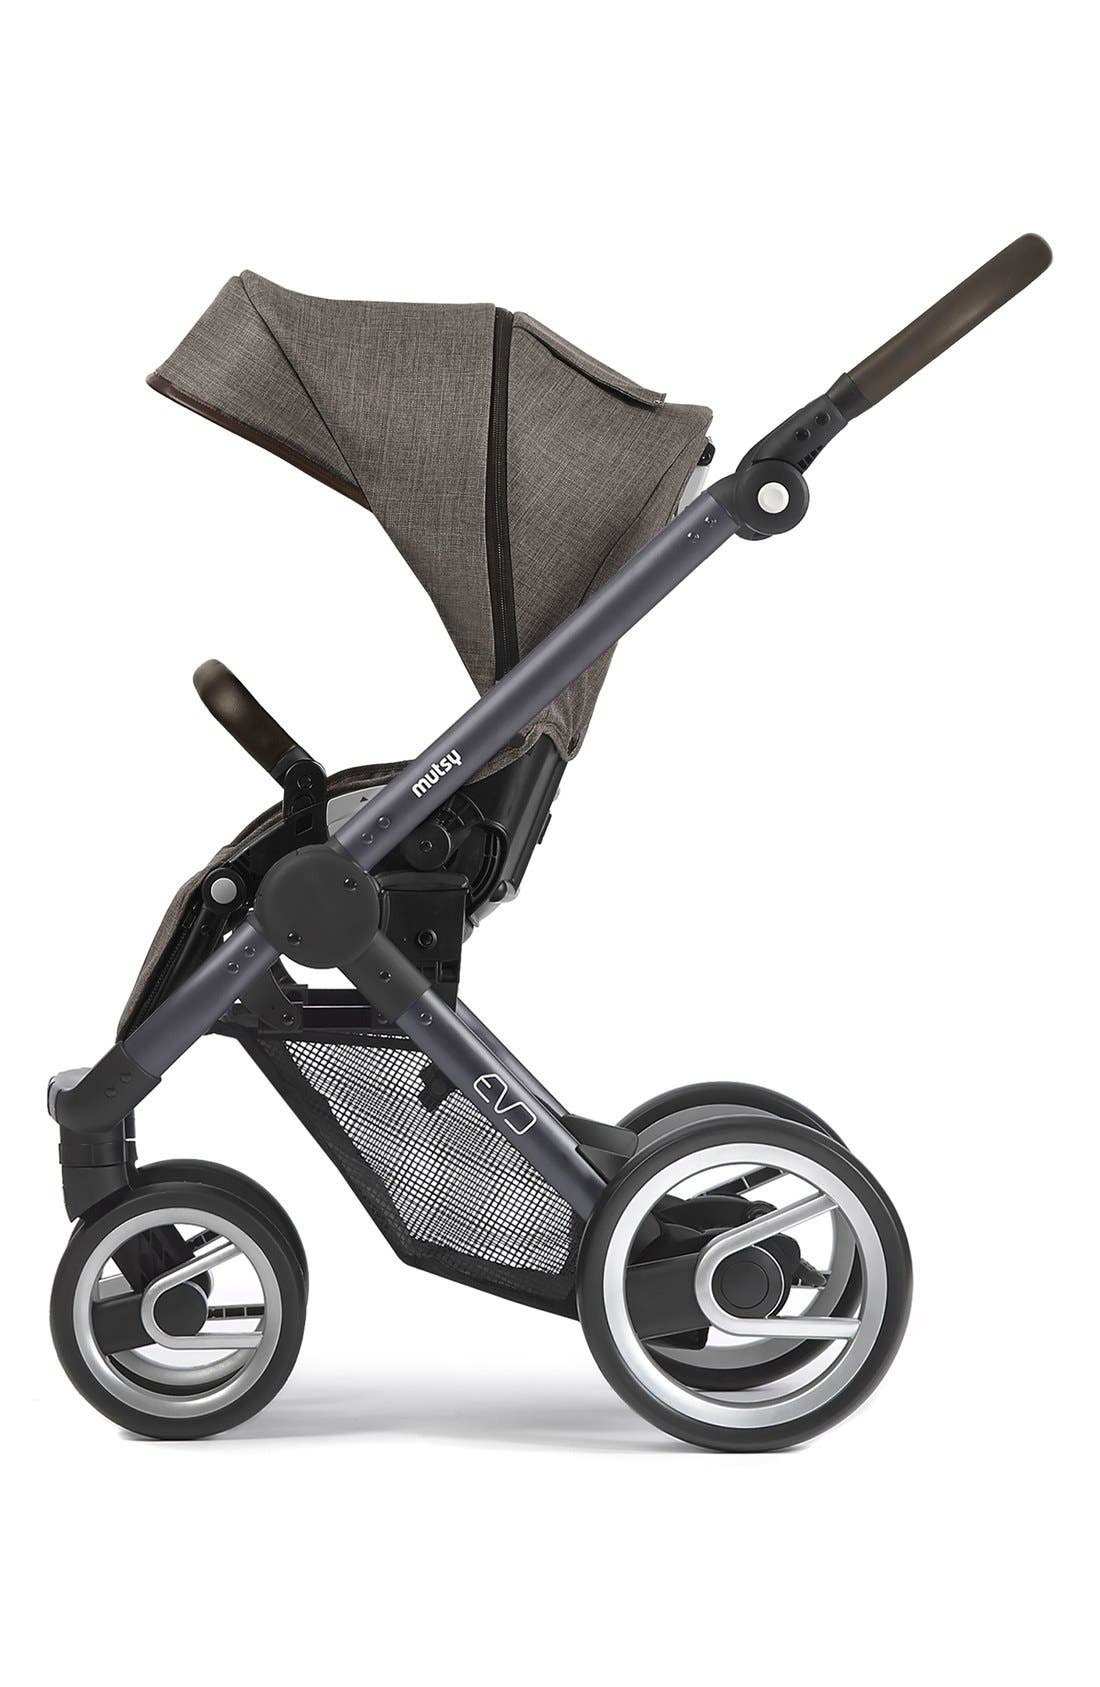 Evo - Farmer Earth Stroller,                             Main thumbnail 1, color,                             212